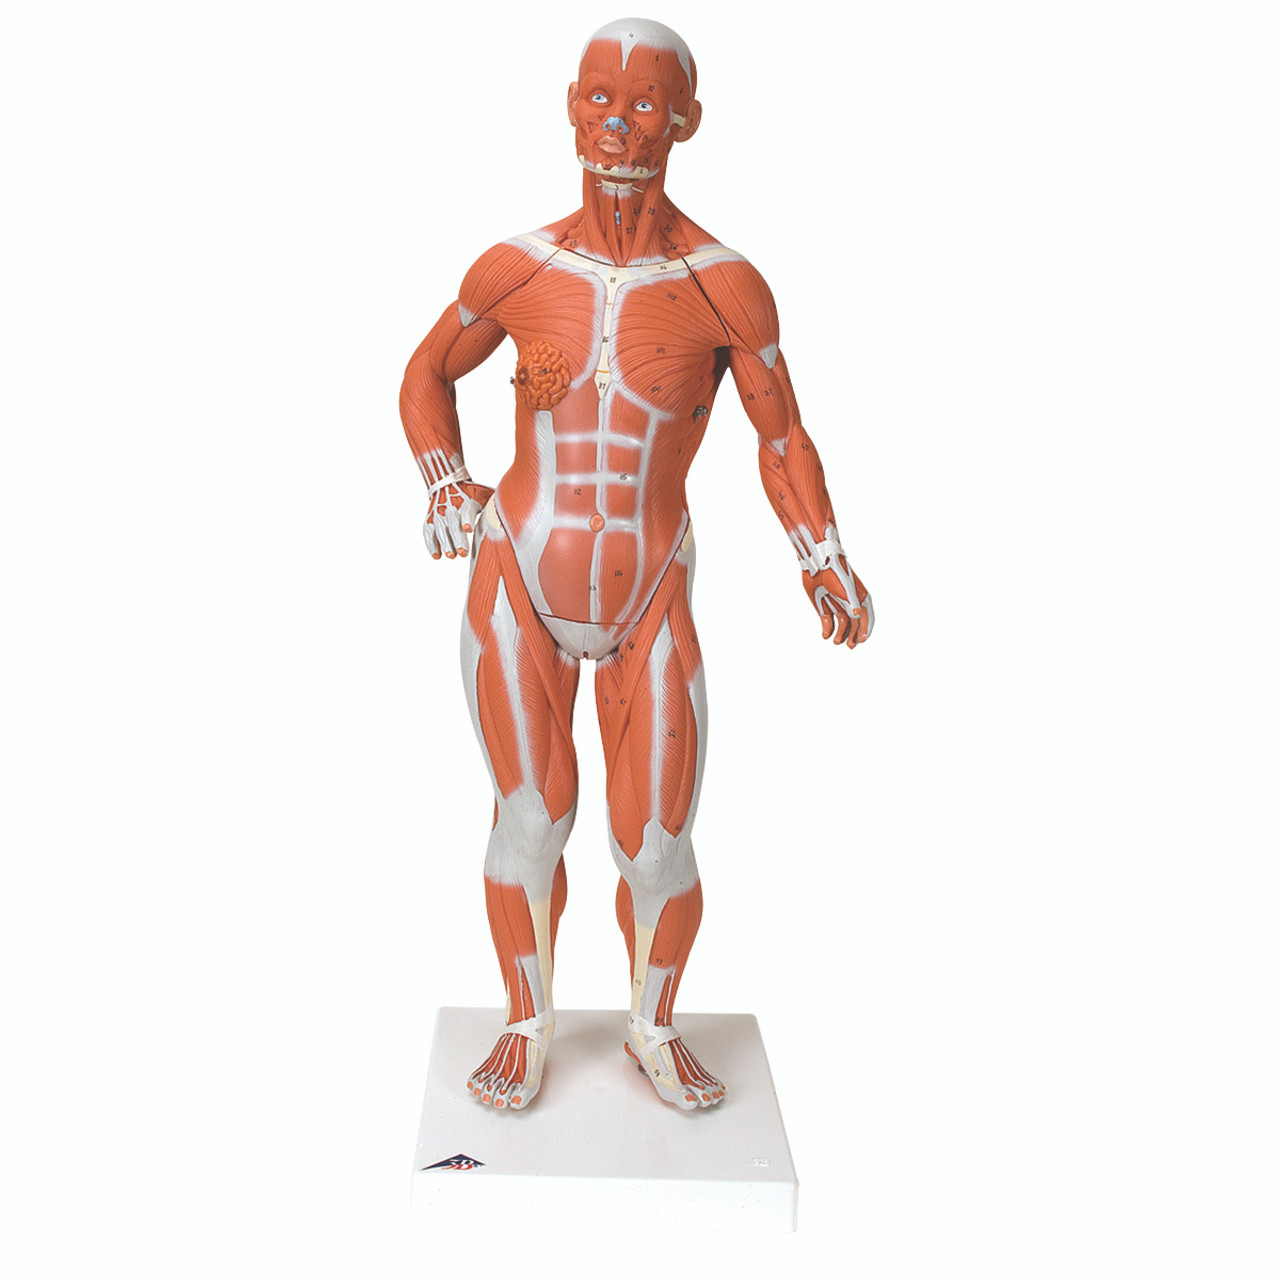 Anatomical Model - 1/3 Life-Size Muscle Figure, 2-part